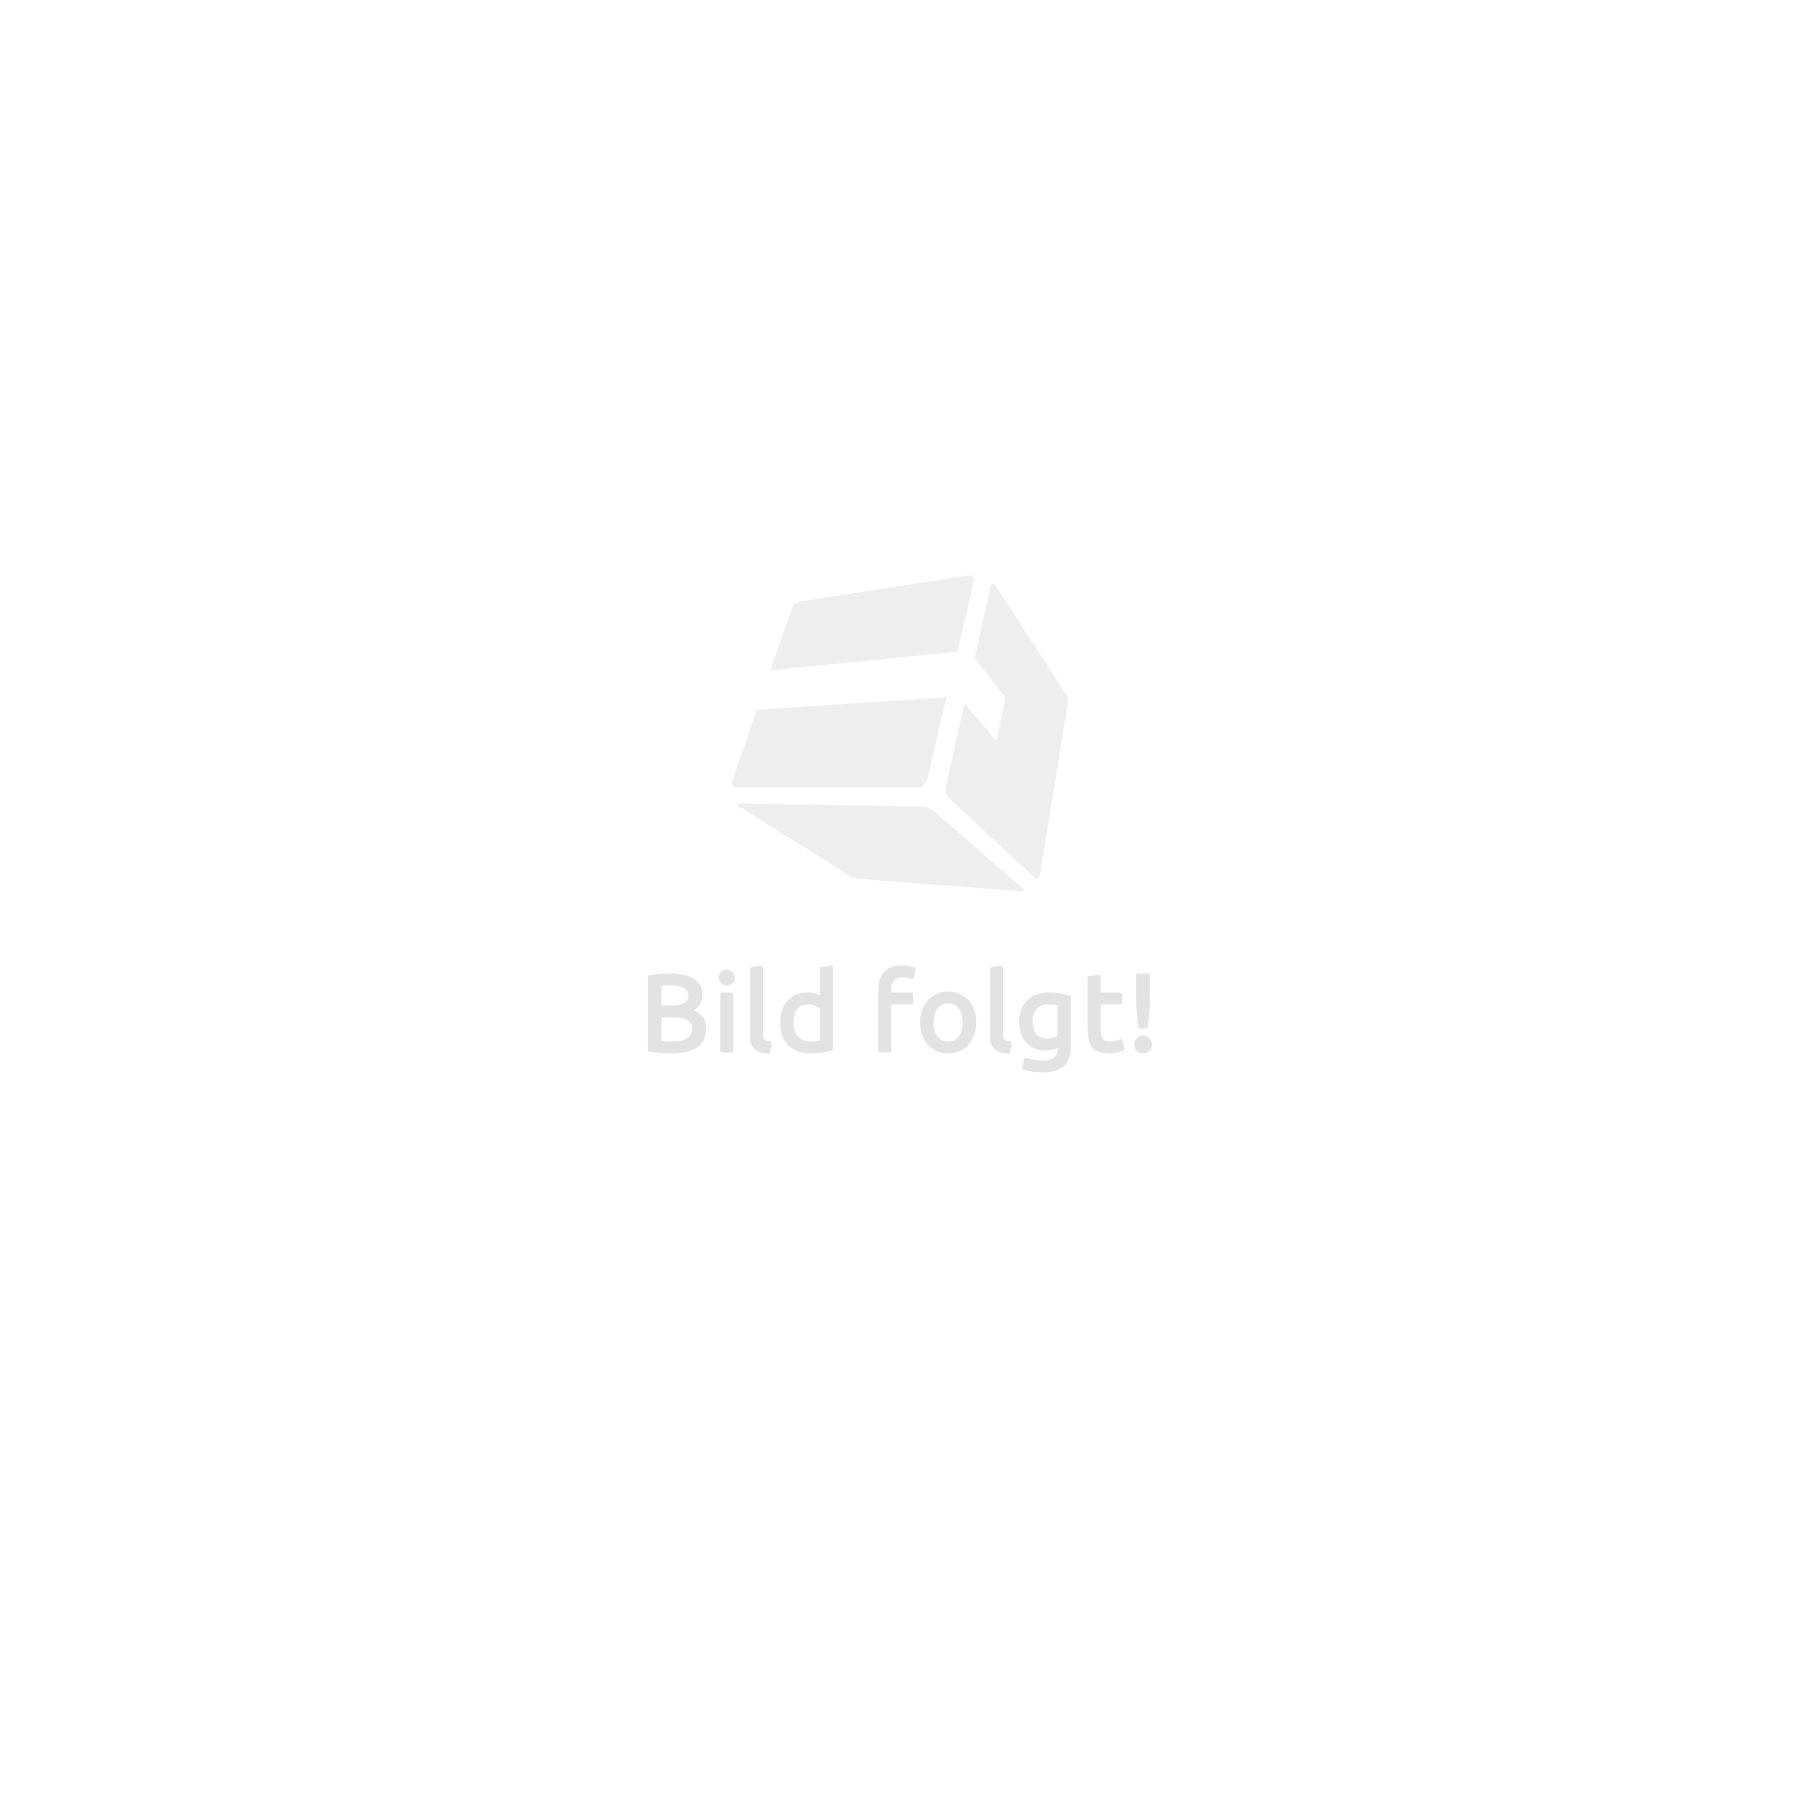 Soporte de pared para monitores de 26-55″ (66-138cm) inclinable y orientable nivel de aire